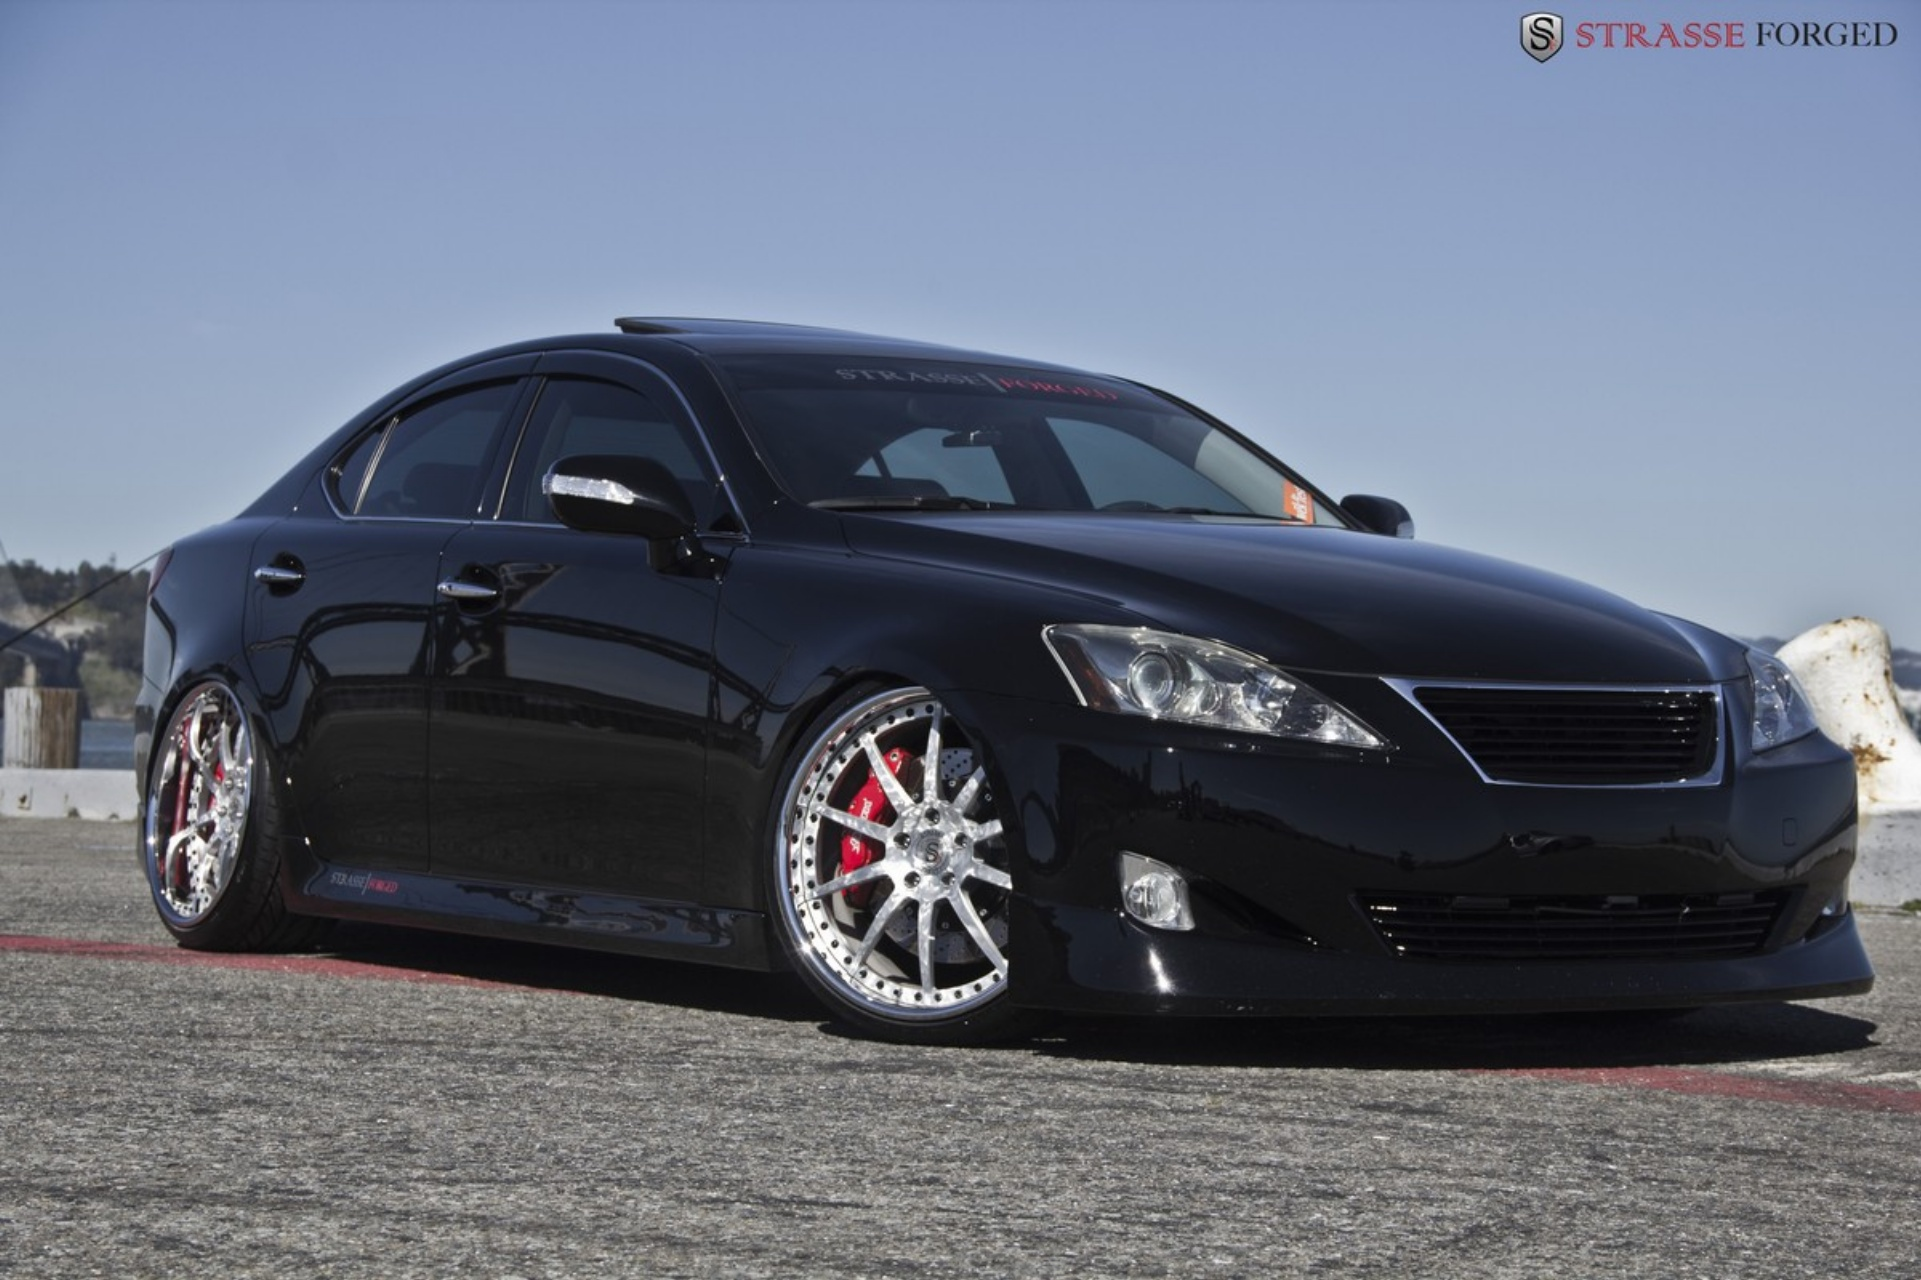 lexus is 250 on strasse forged wheels autoevolution. Black Bedroom Furniture Sets. Home Design Ideas